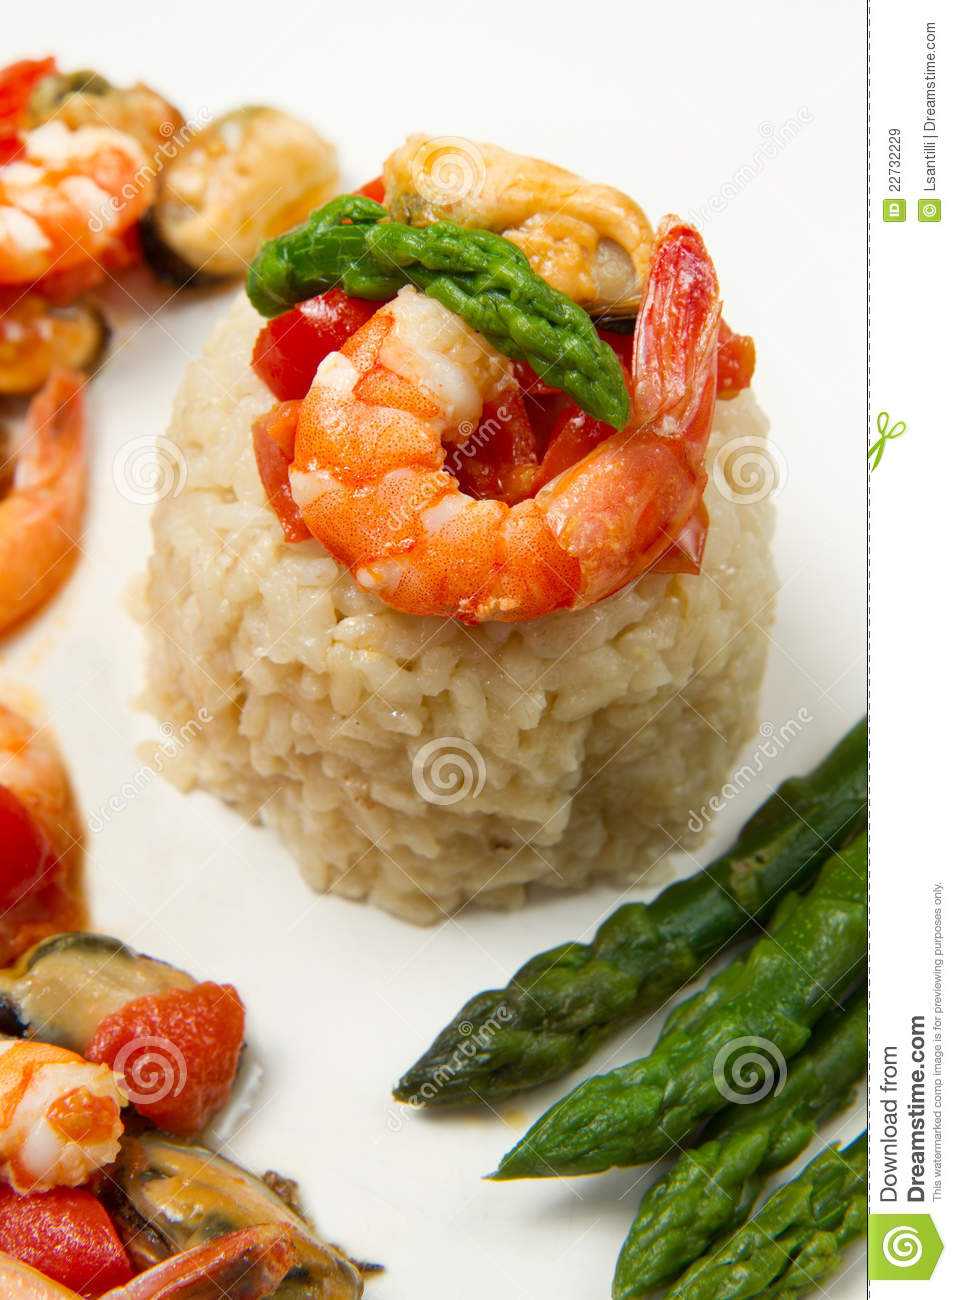 Risotto With Shrimp And Asparagus Royalty Free Stock ...